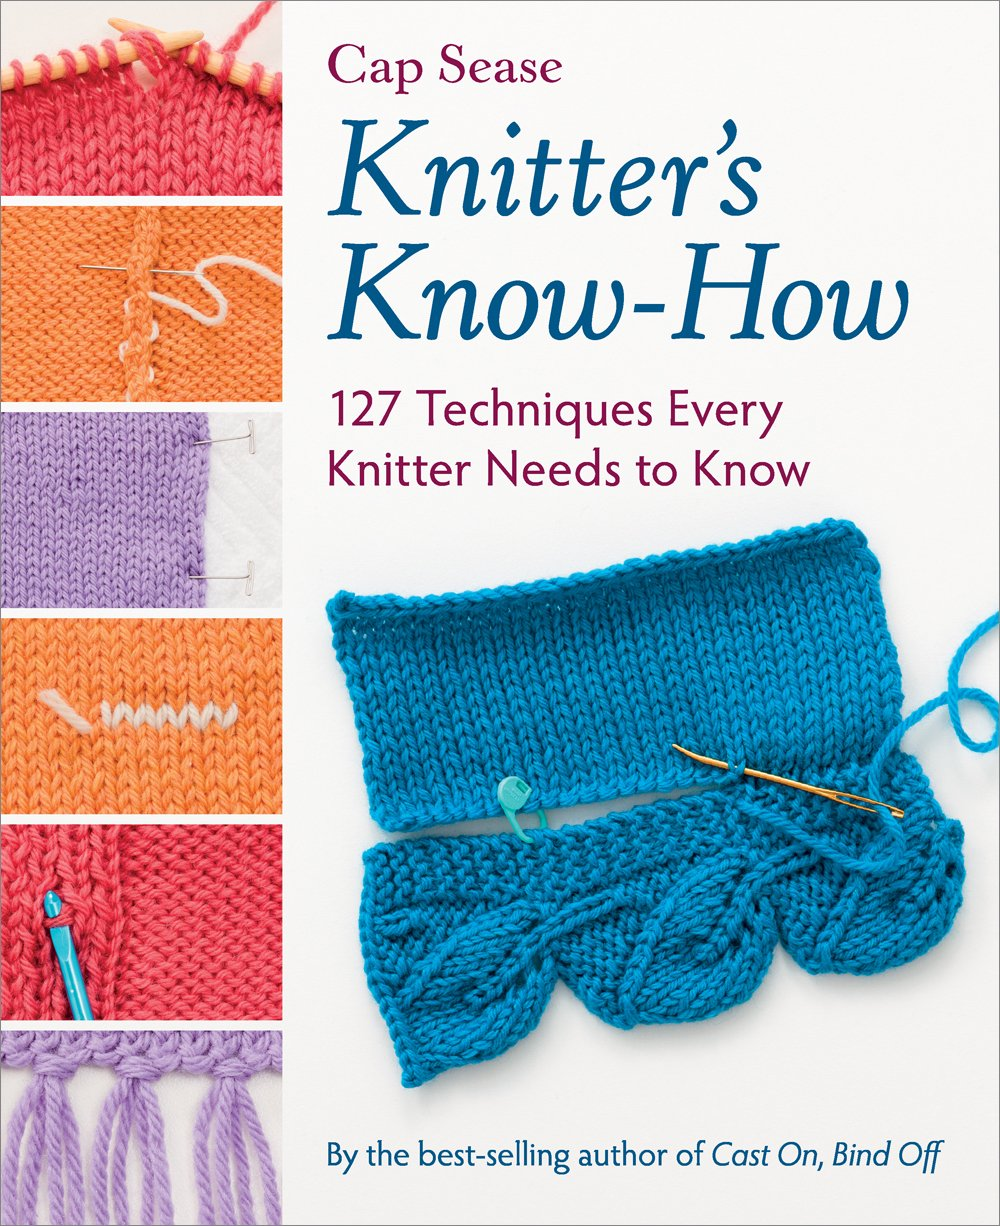 Knitter's Know-How: 127 Techniques Every Knitter Needs to Know: Cap Sease:  0744527113750: Amazon.com: Books